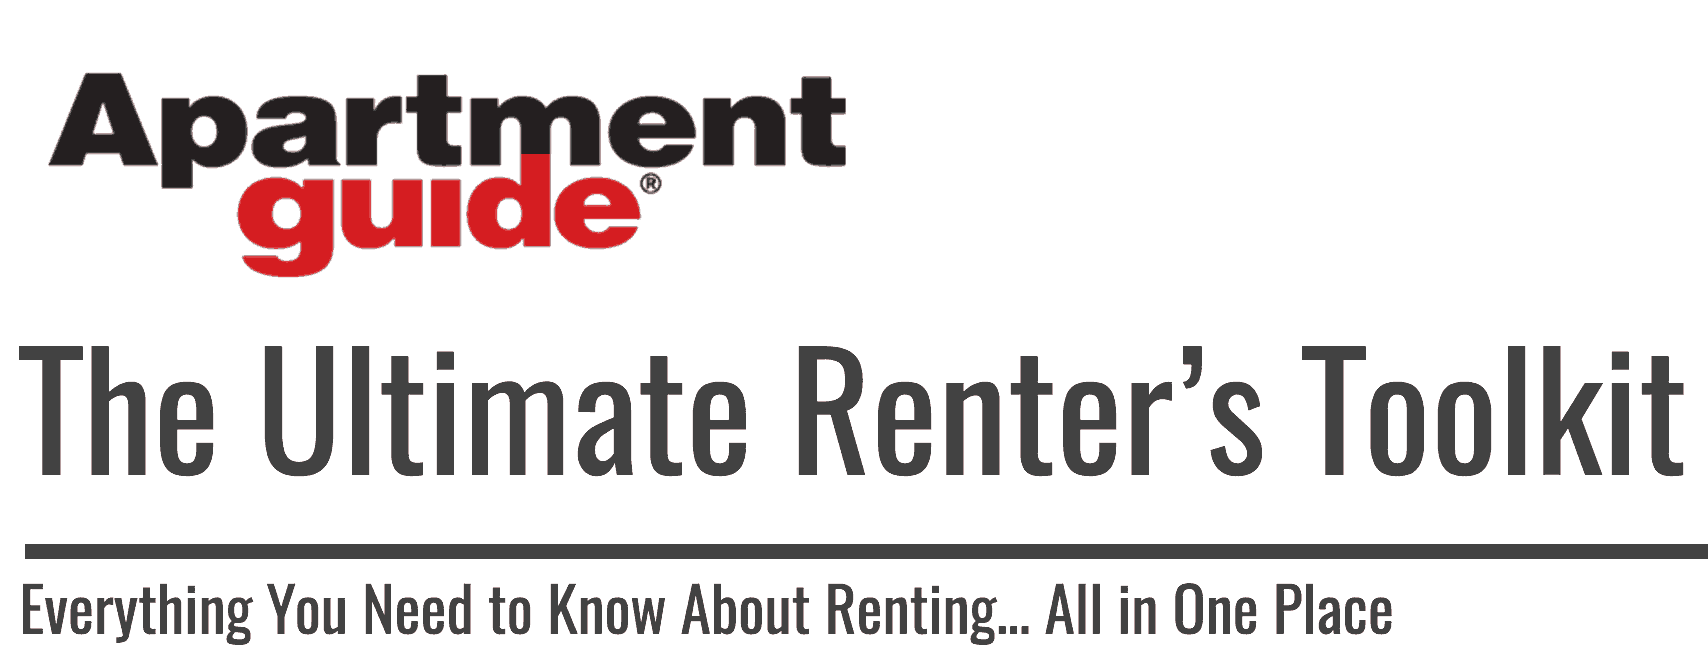 the ultimate renter's toolkit | apartmentguide